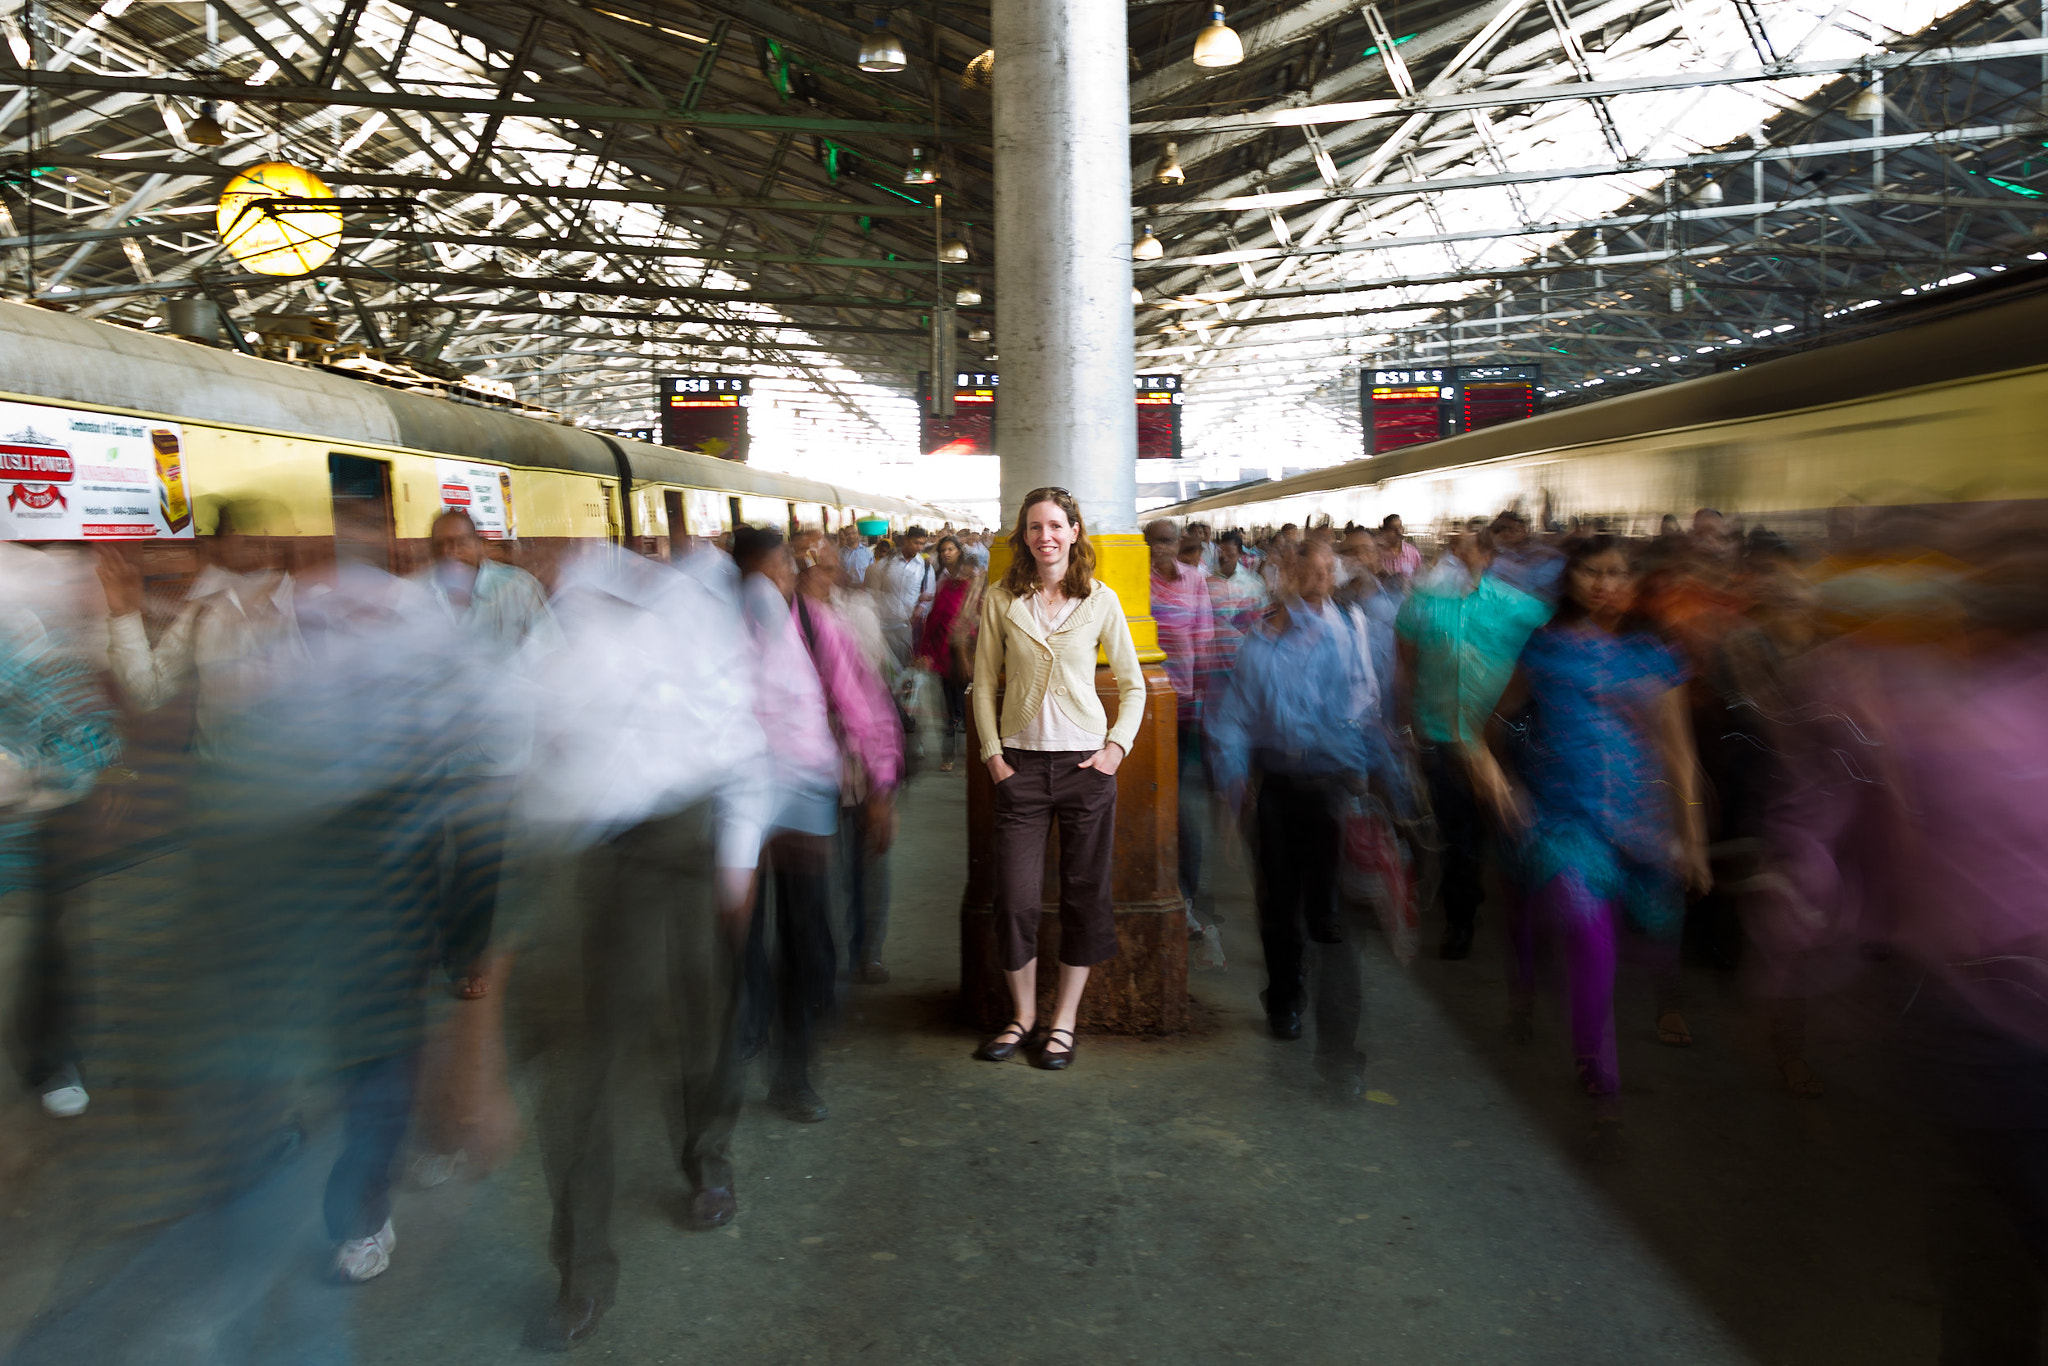 Photograph Crowded train station in Mumbai by Fabio Bosco on 500px